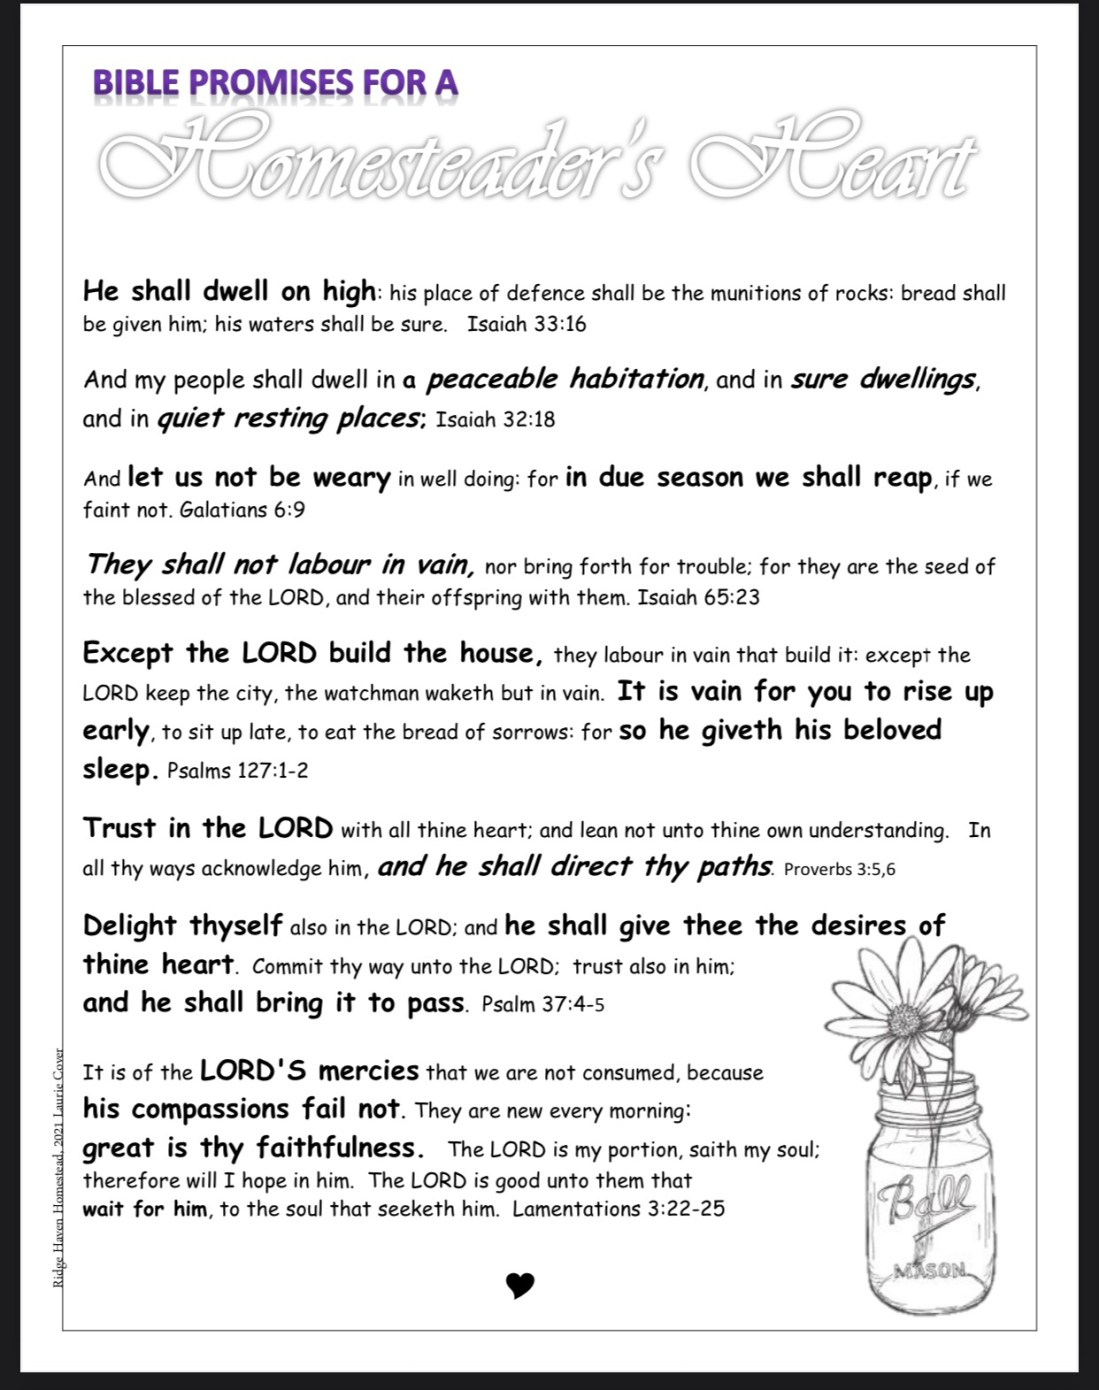 Bible promises for homesteaders